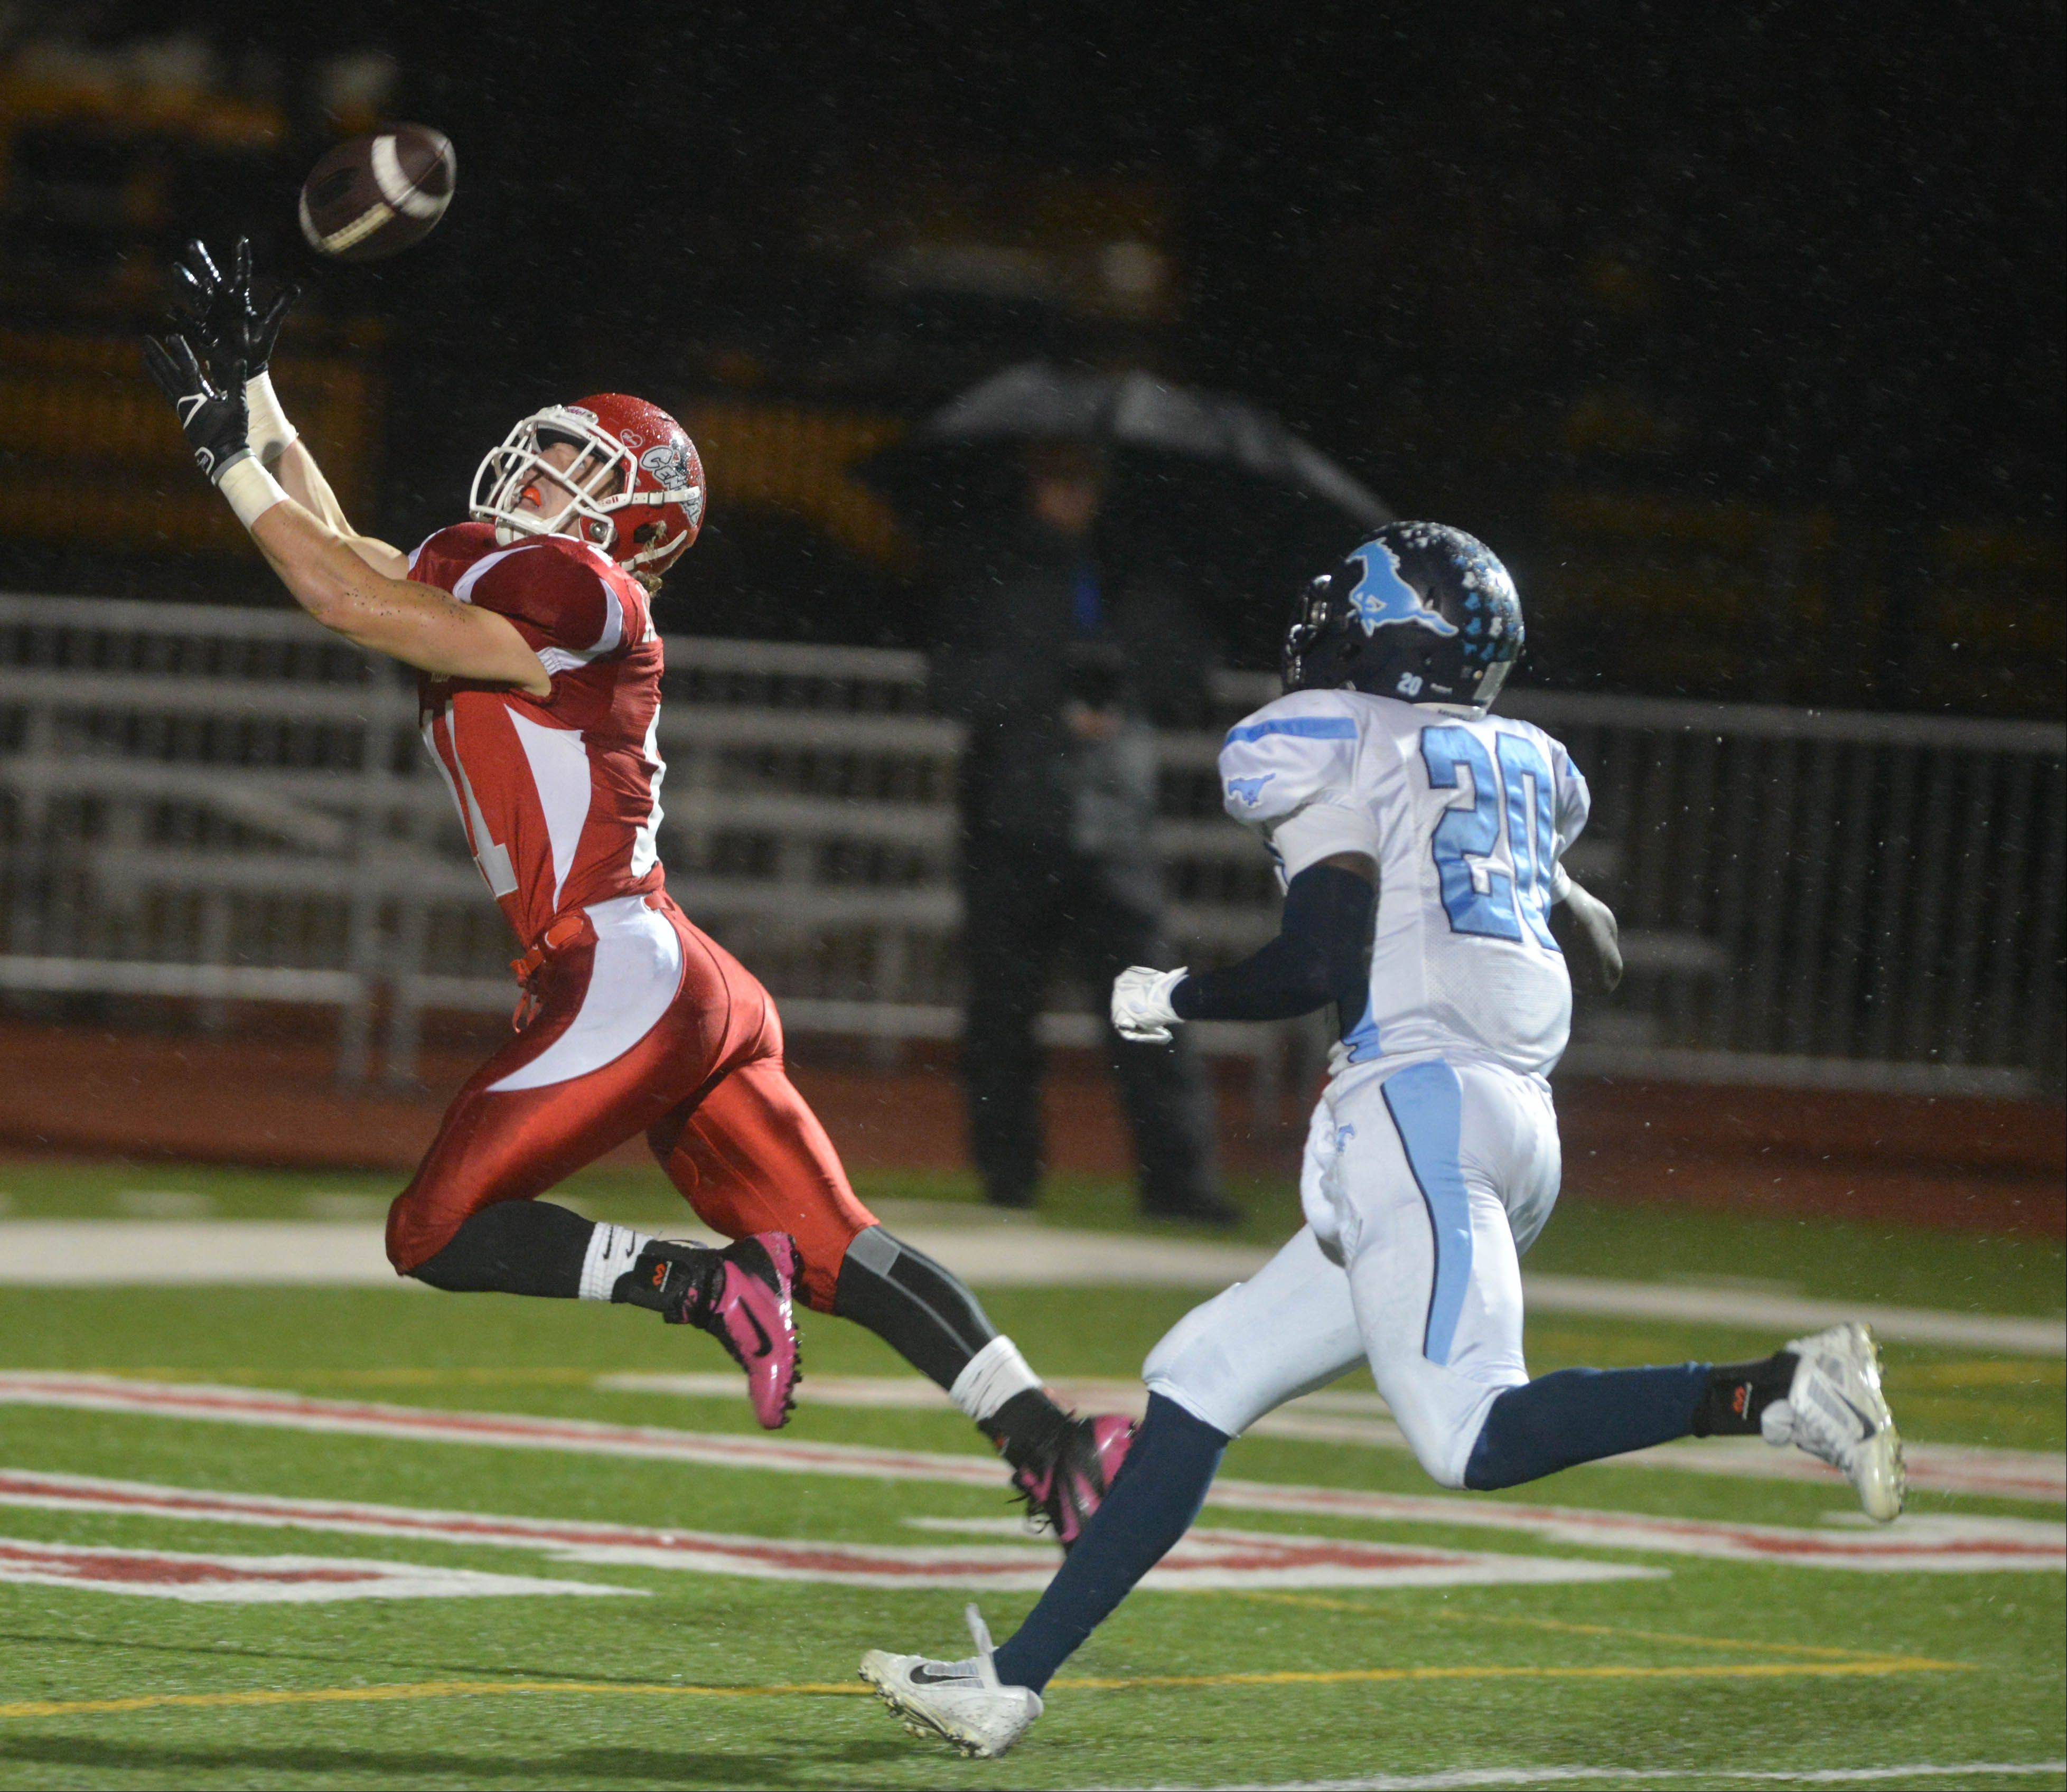 Naperville Central's Ben Andreas reaches for the ball during Friday's playoff game against Downers Grove South.